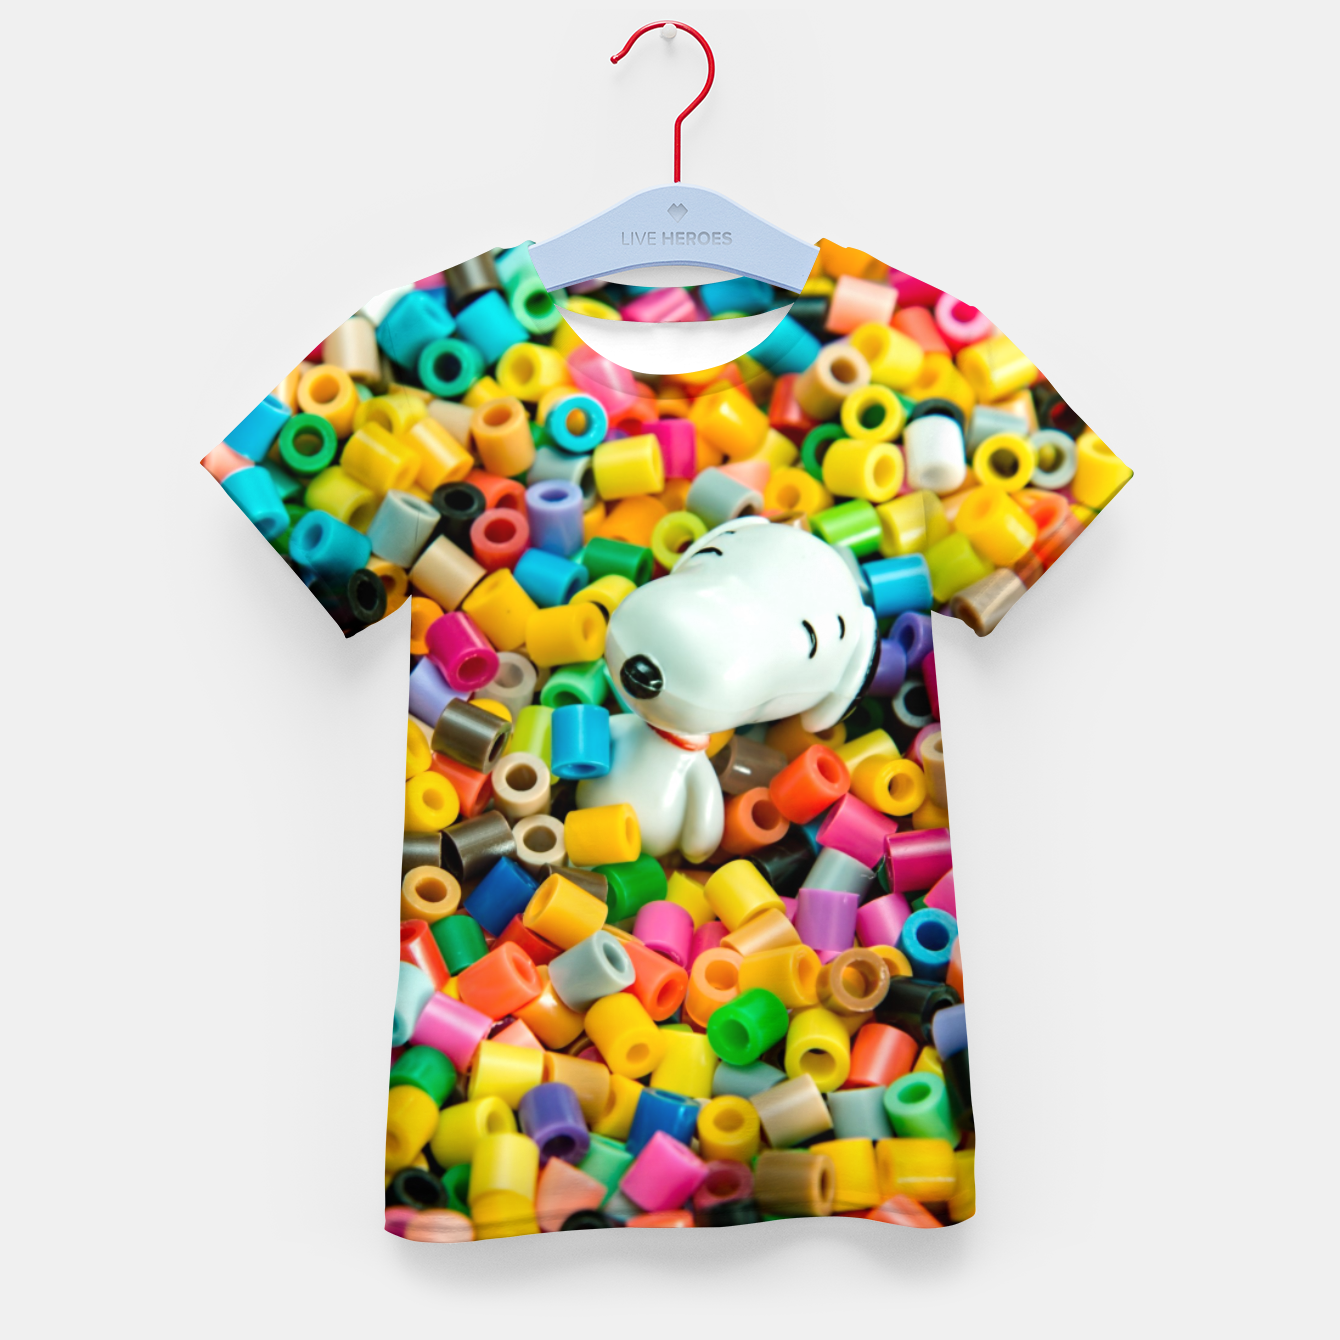 Foto Snoopy Beaded Bathtub Kid's t-shirt - Live Heroes